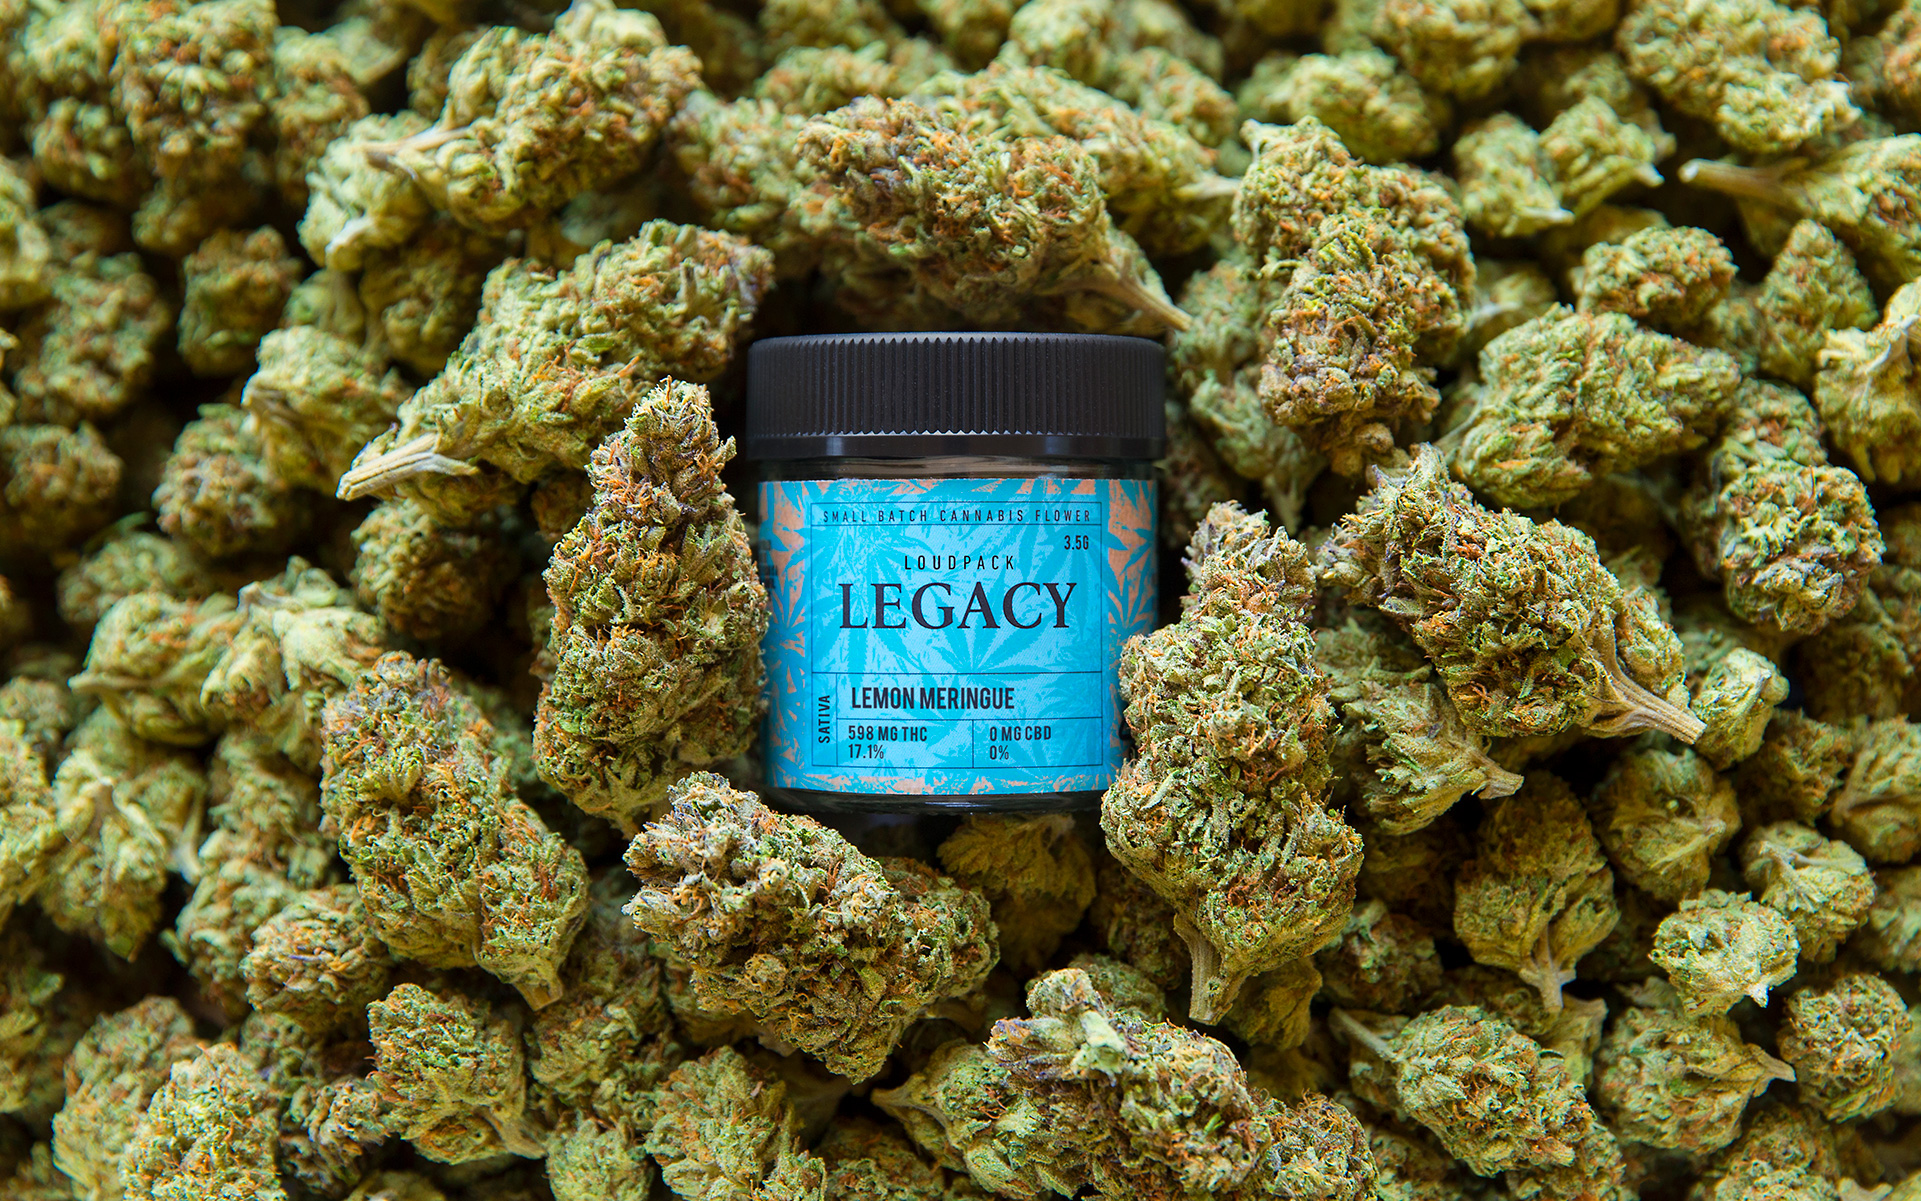 Wanna Buy Verified Humboldt? Now There's Loudpack 'Legacy'